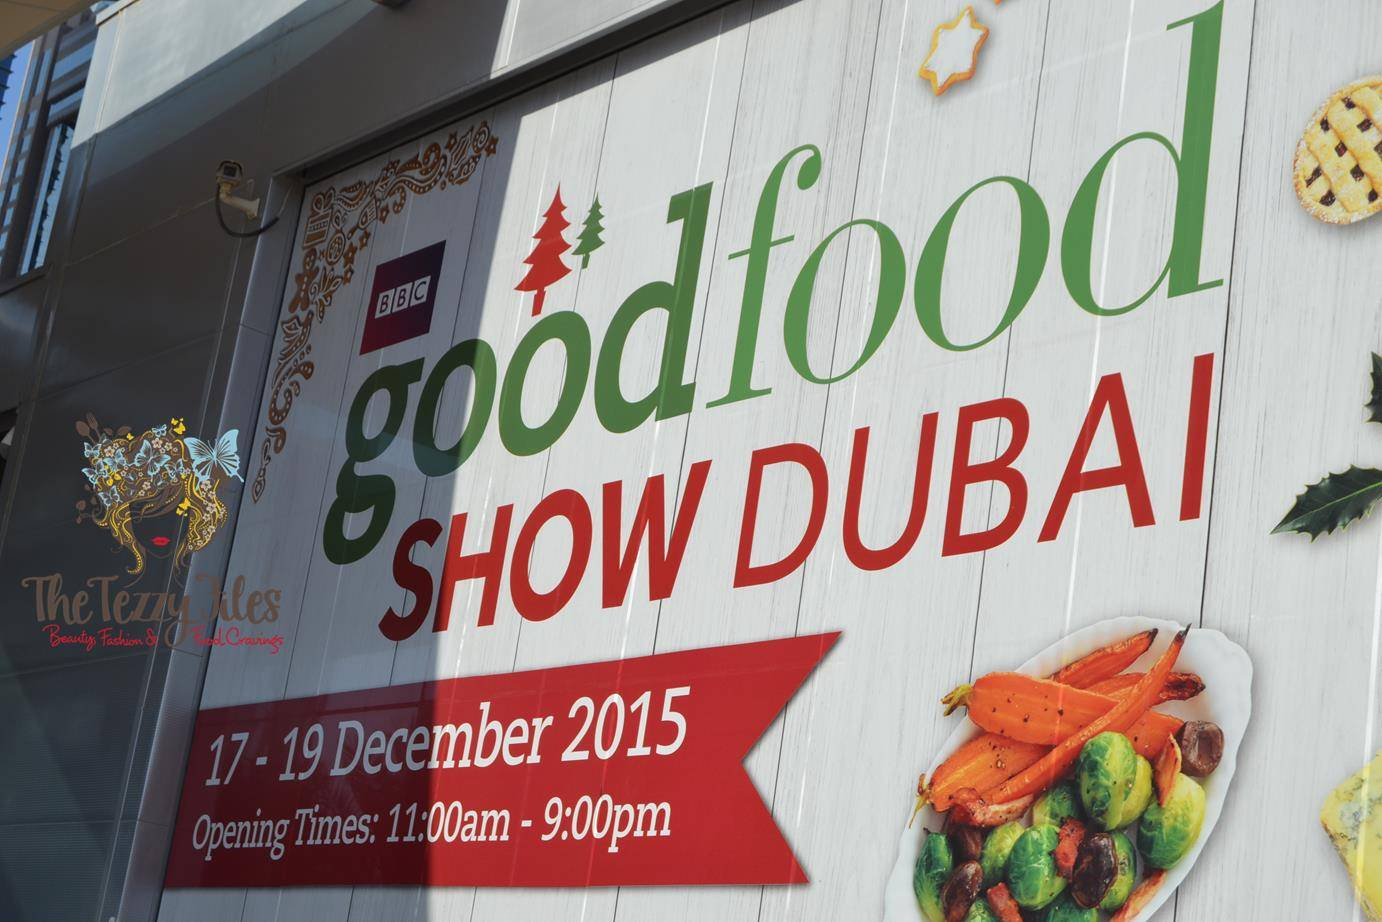 BBC Good Food Show Dubai World Trade Center 2015 Paul Hollywood Lurpak Cake Decoration Christmas (16)